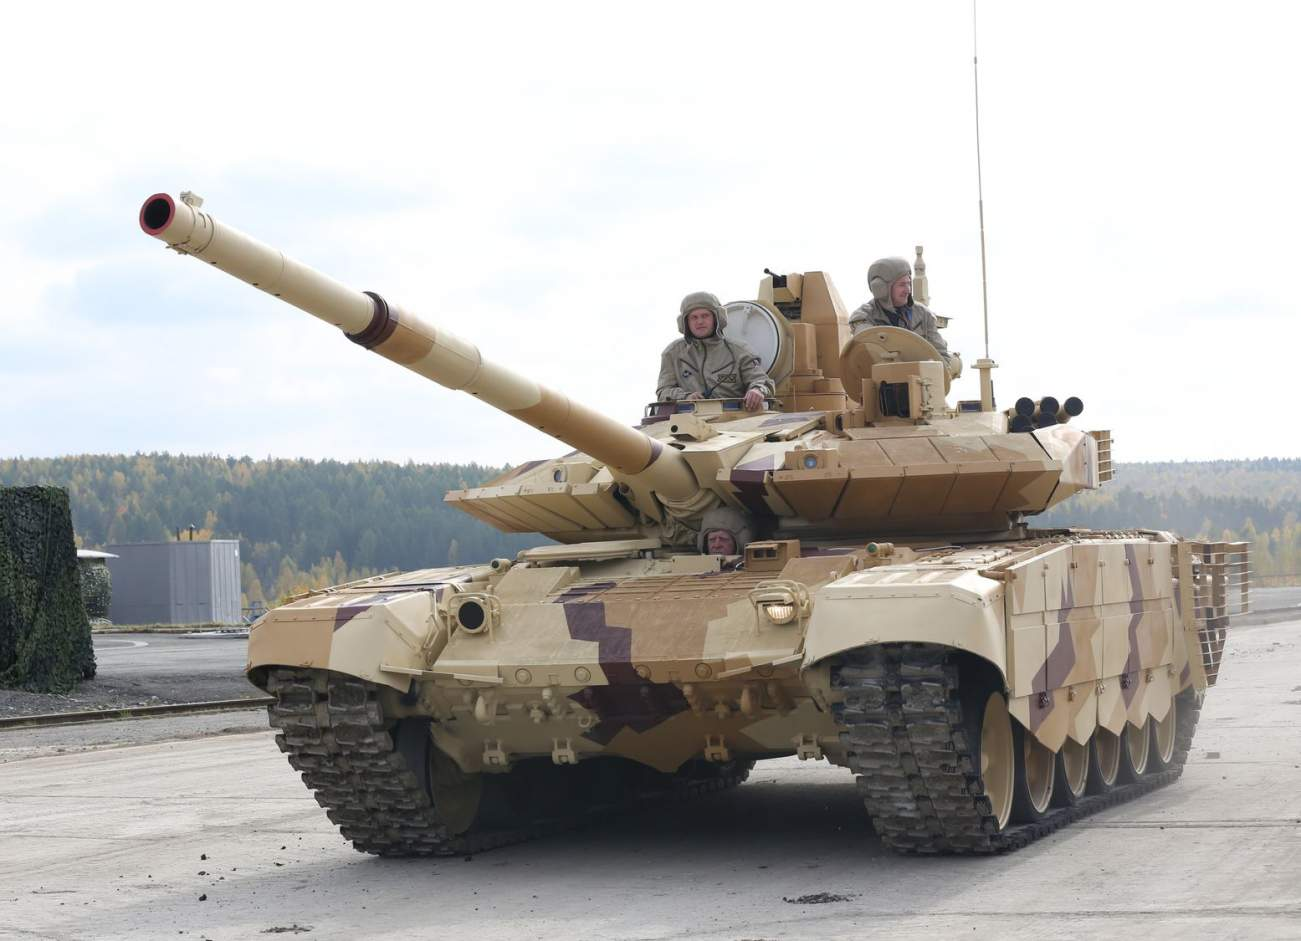 Russia Keeps Losing Its T-90 Tanks in Syria for One Reason